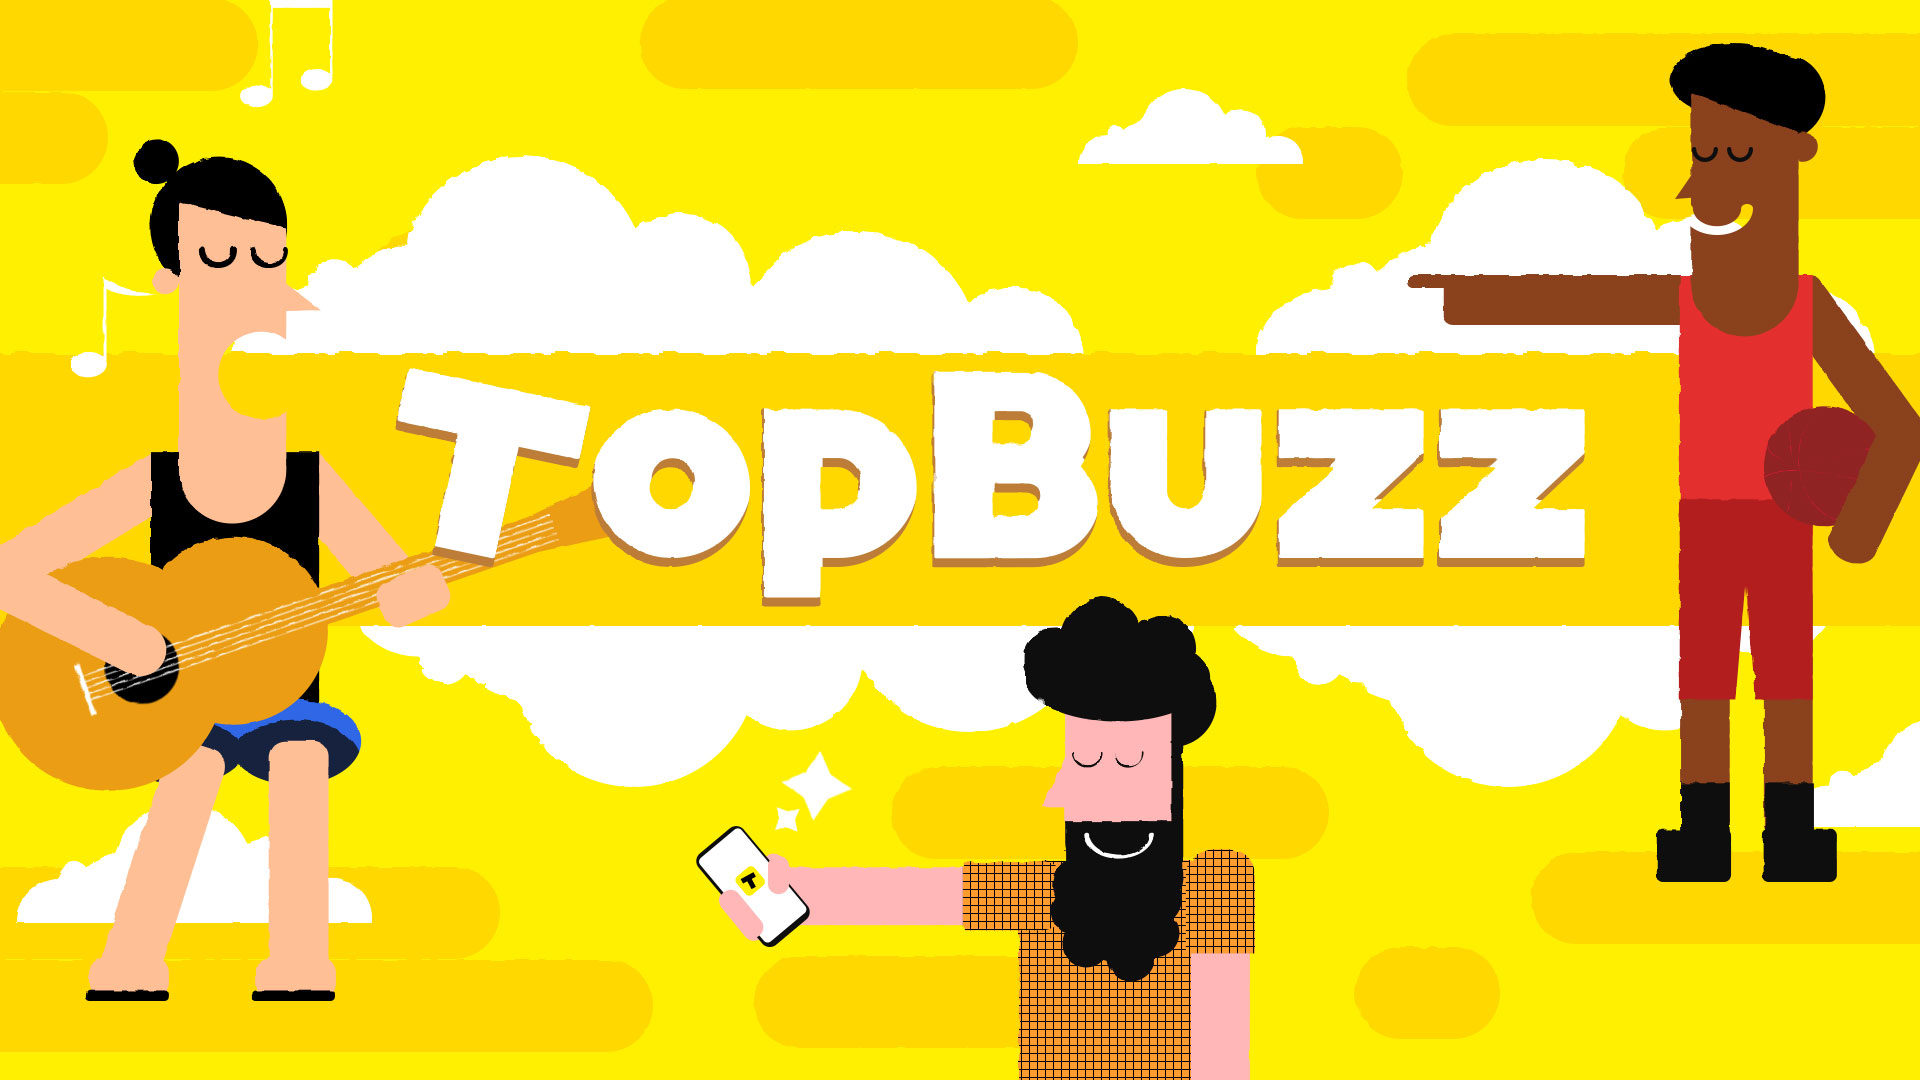 A News App for Those Hooked on HGTV, Hello TopBuzz!